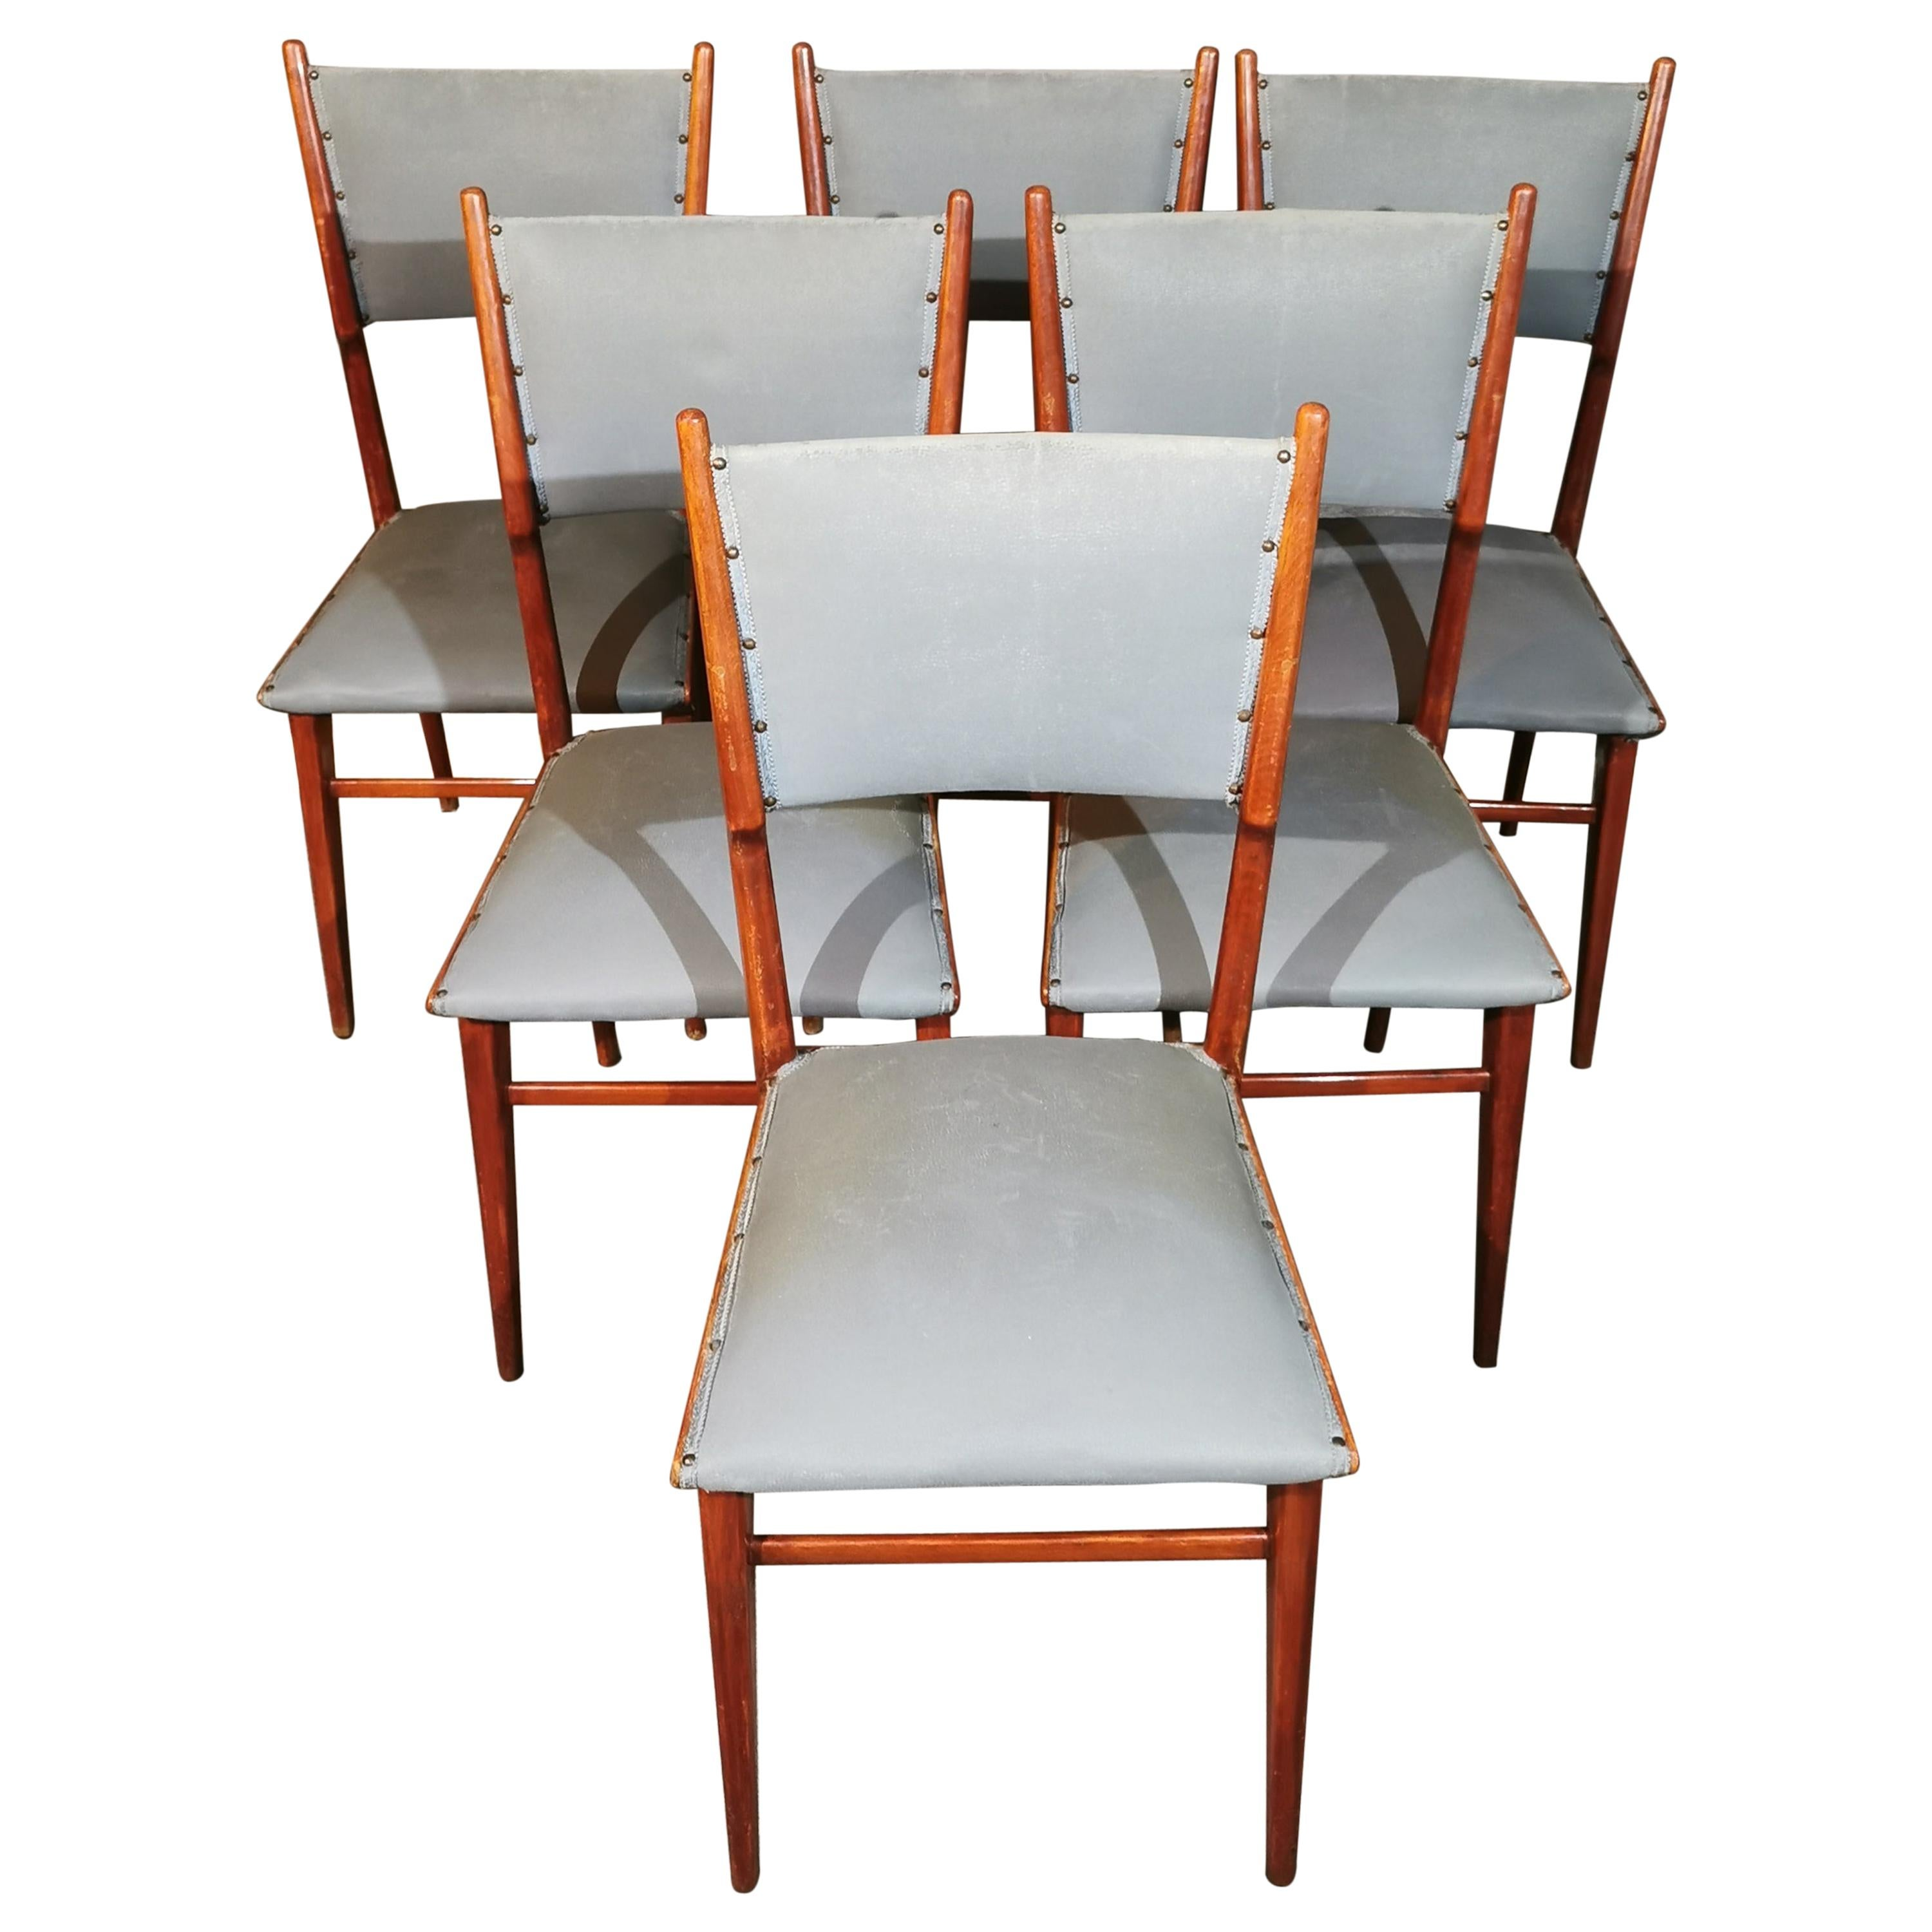 Midcentury Chairs by Carlo de Carli Leather Wood Italy 1960s Set of 6